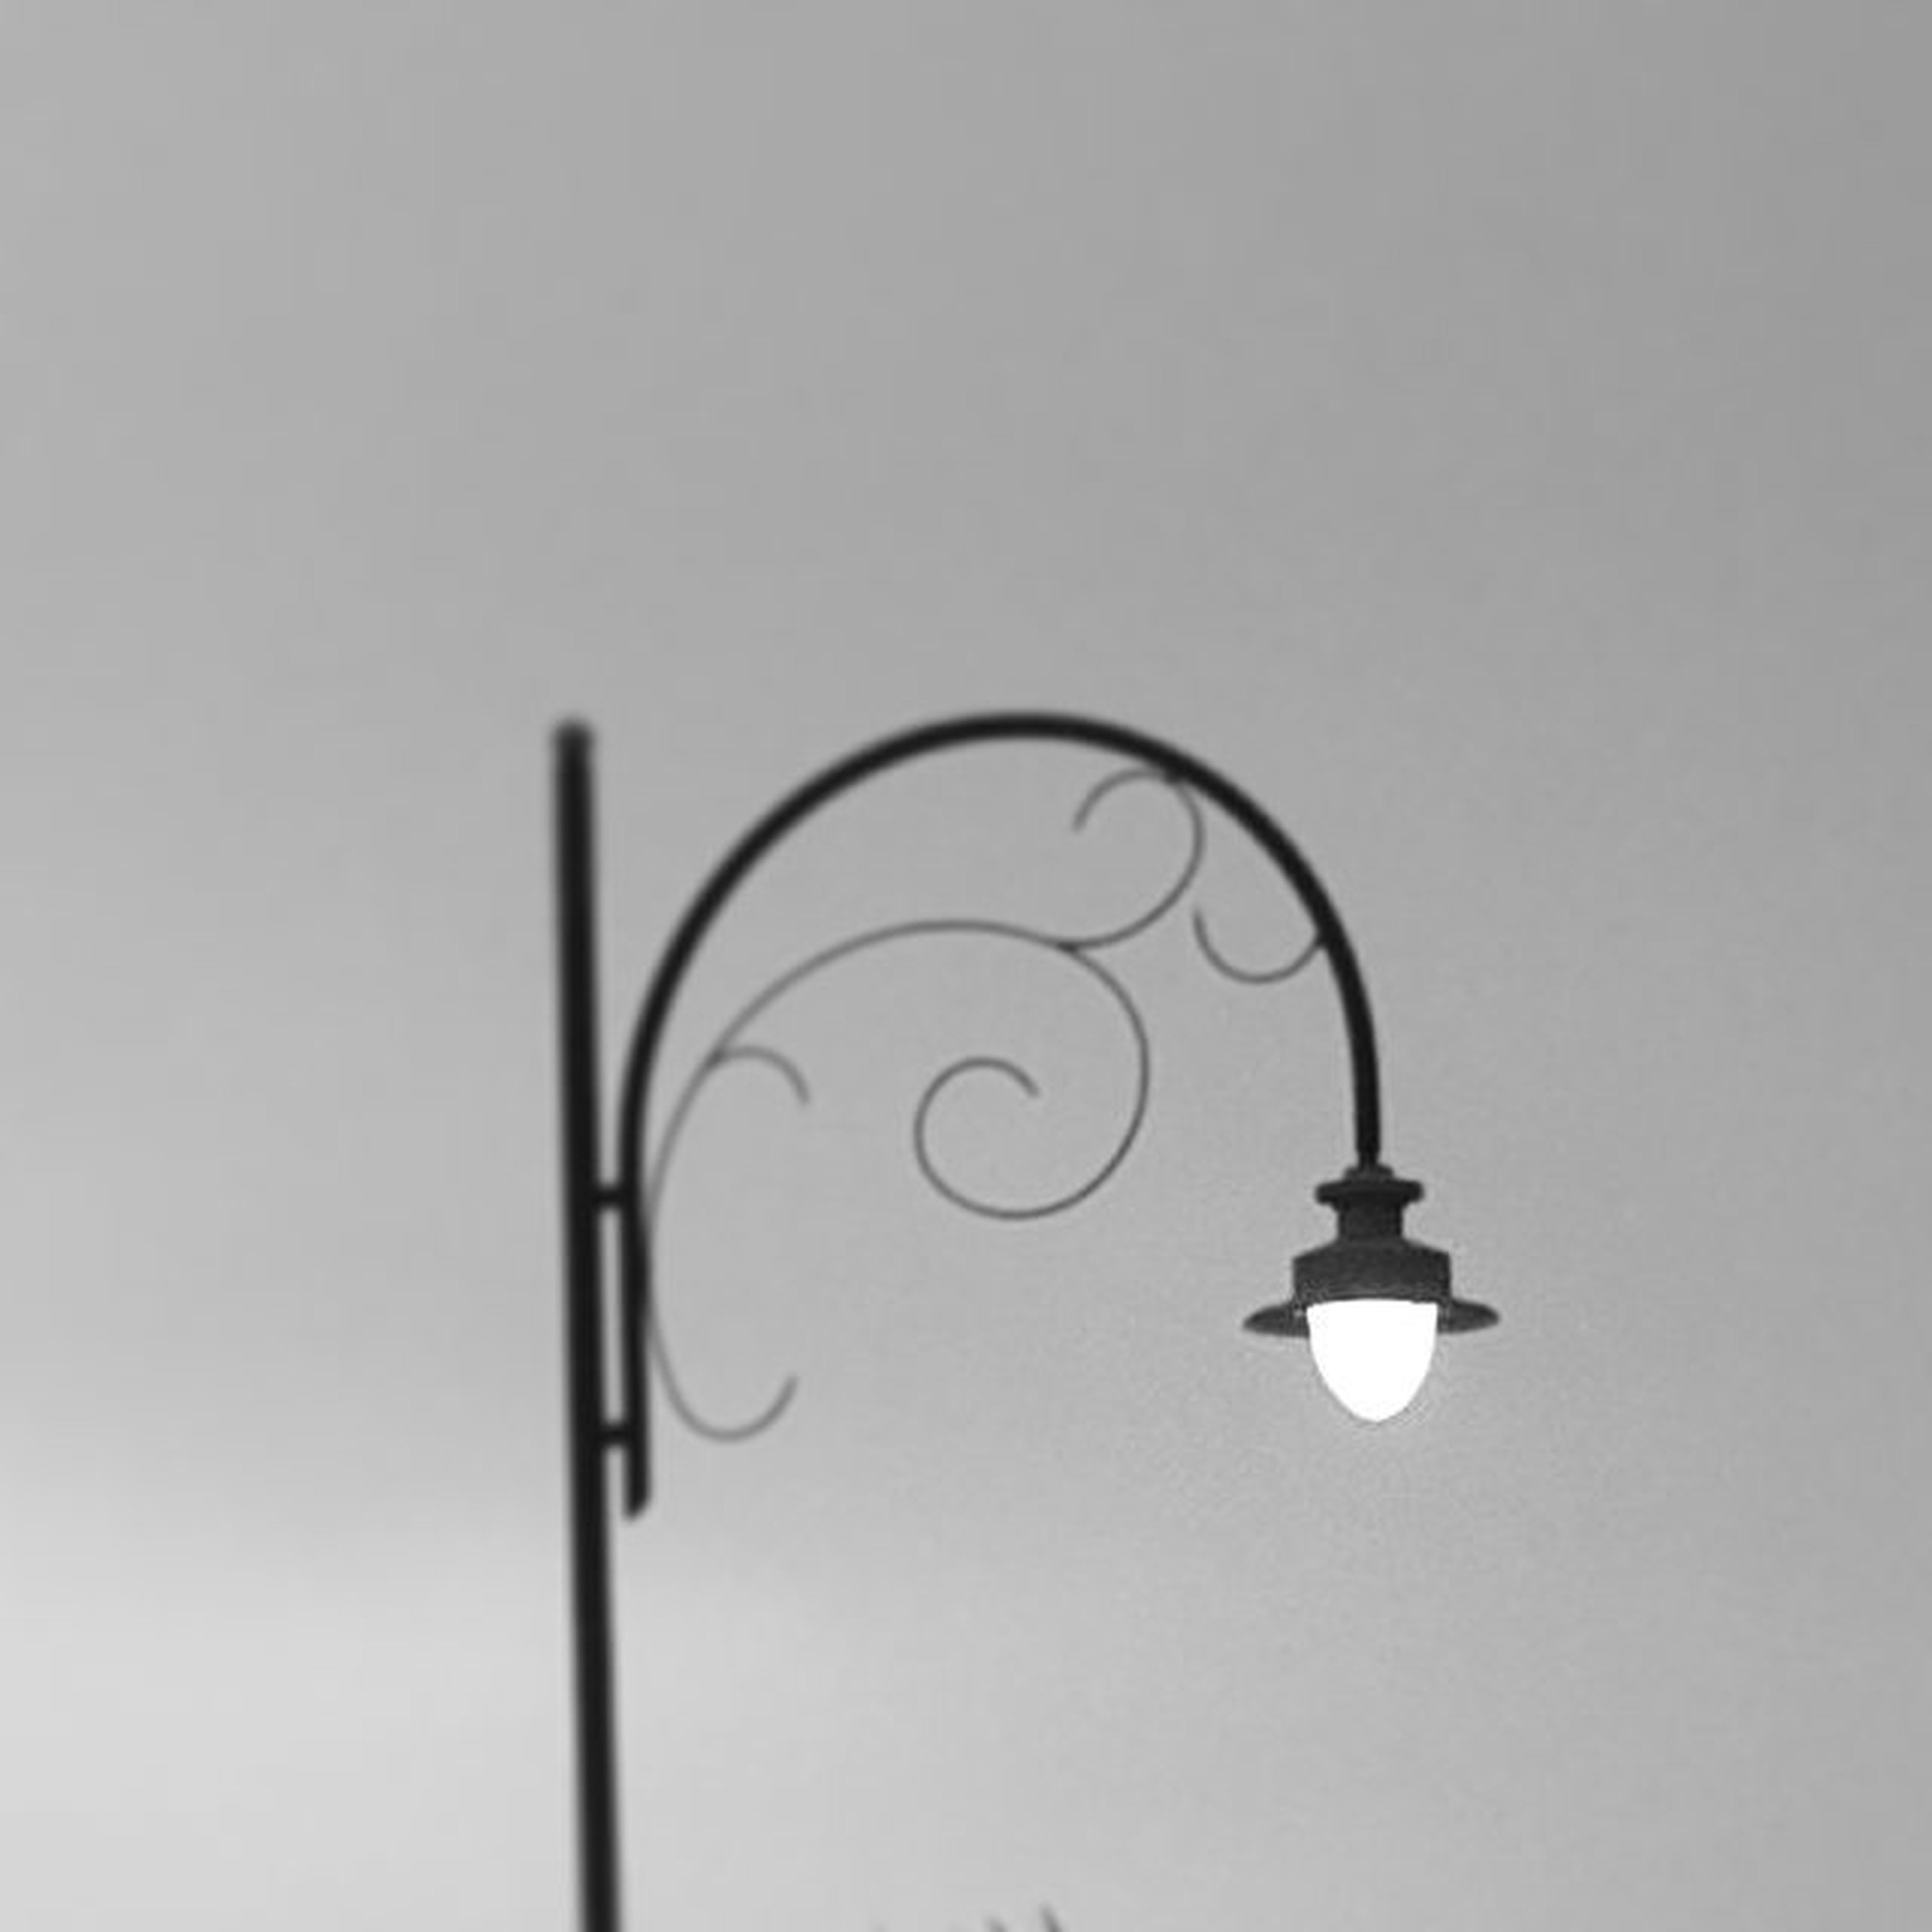 low angle view, copy space, clear sky, street light, silhouette, lighting equipment, communication, sky, no people, outdoors, pole, day, close-up, nature, electricity, dusk, cable, mid-air, technology, connection